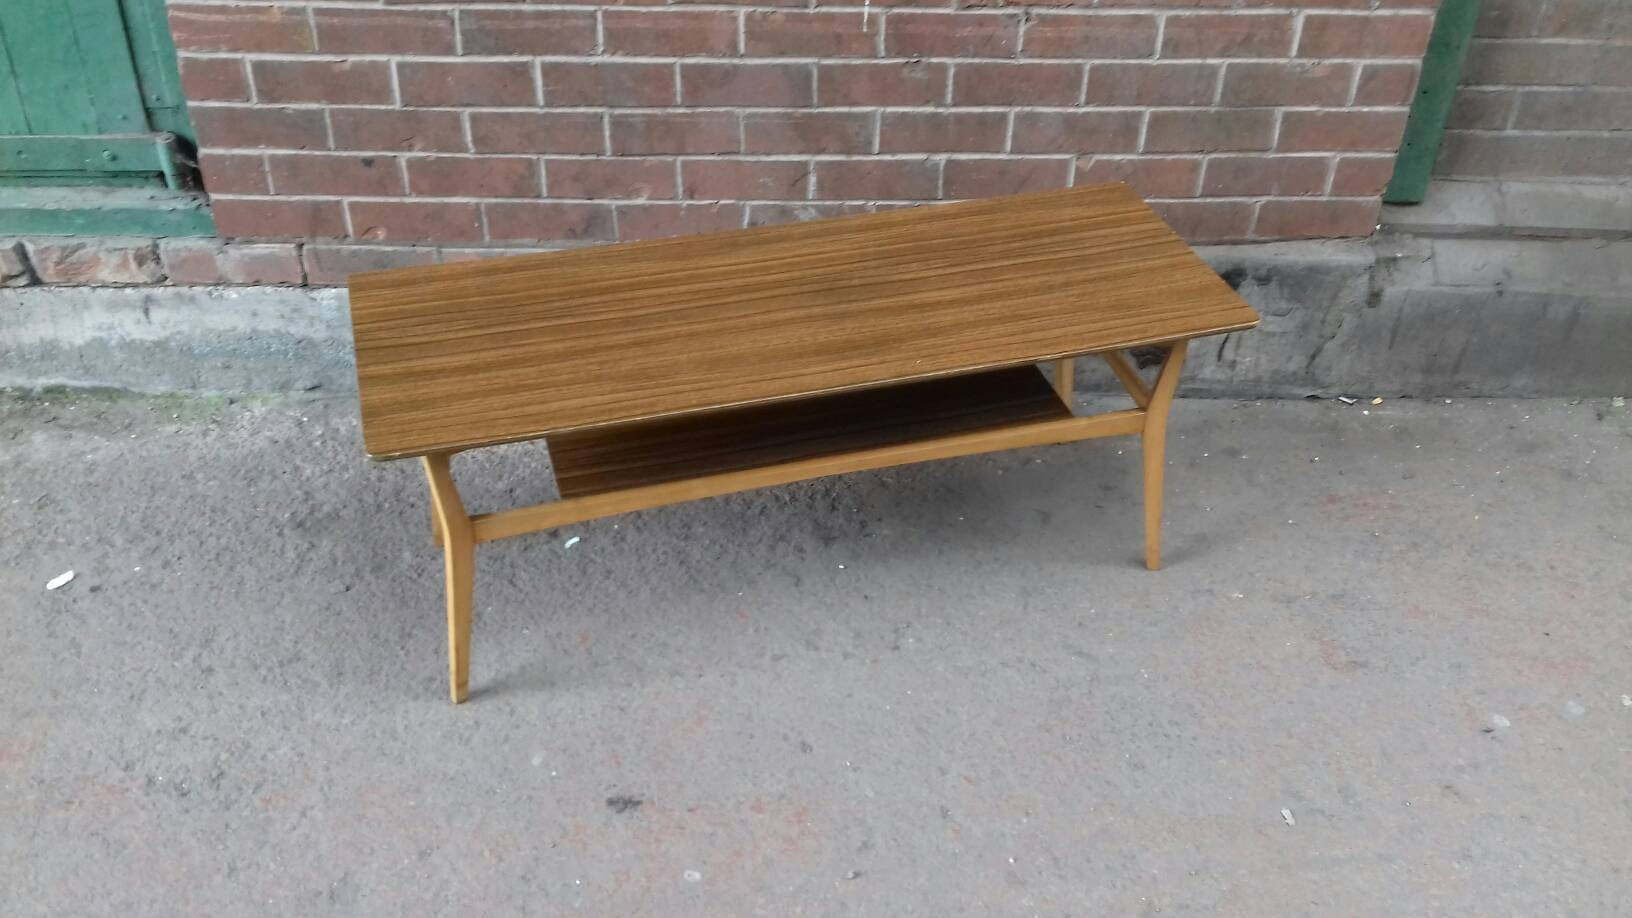 Coffee Table Retro Furniture Retro Coffee Table Mid Century Modern - Mid century modern formica table